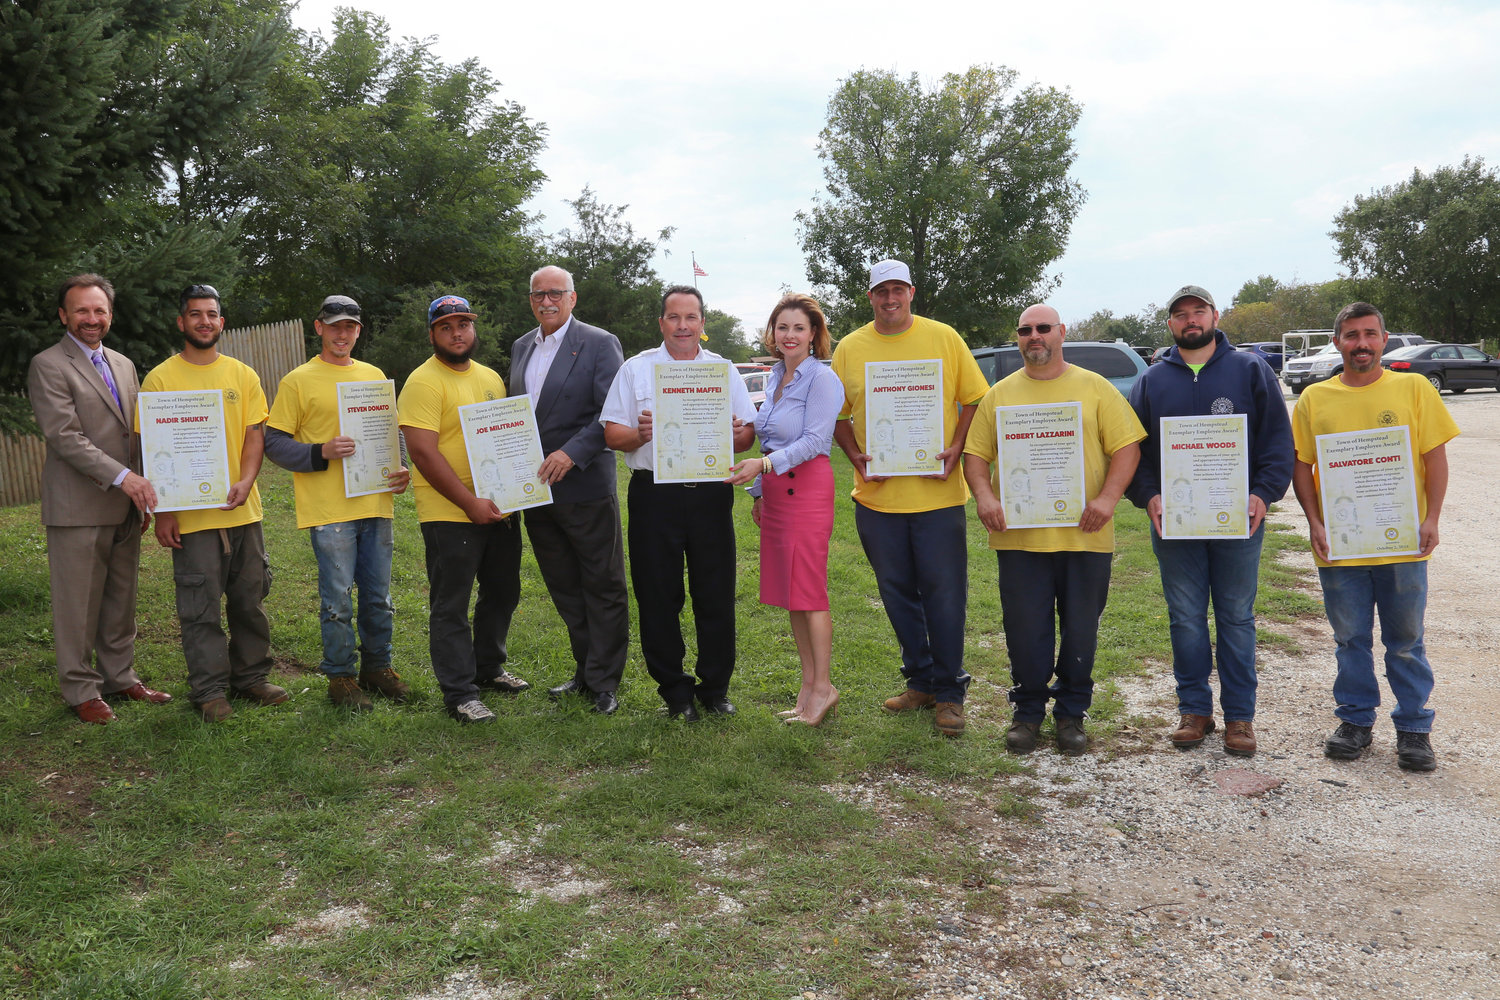 Hempstead Town Councilwoman Erin King Sweeney and Councilman Dennis Dunne presented an award to a Town of Hempstead sanitation inspector and field services crew who found illegal drugs growing at an empt property in Wantagh. From left, CSEA Local President Charles Sellitto, crew members Nadir Shukry, Seven Donato, Joe Militrano, Councilman Dennis Dunne, Sanitation Inspector Kenneth Maffei, Councilwoman Erin King Sweeny, crew members Anthony Gionesi, Robert Lazzarini, Michael Wood and Salvatore Conte.